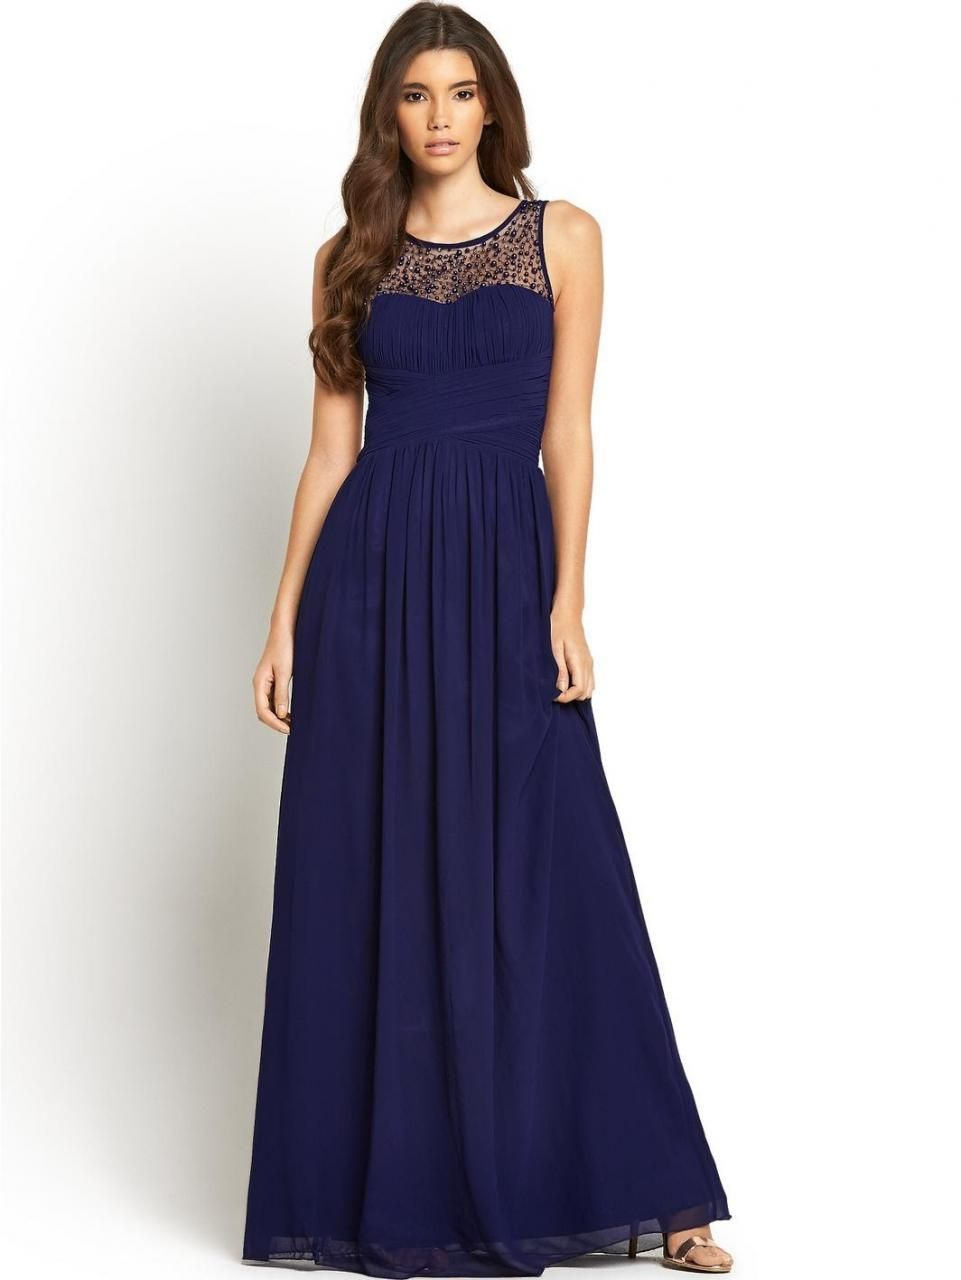 Cheap Maxi Dresses For Tall Women | Tall women | Pinterest | Maxis ...